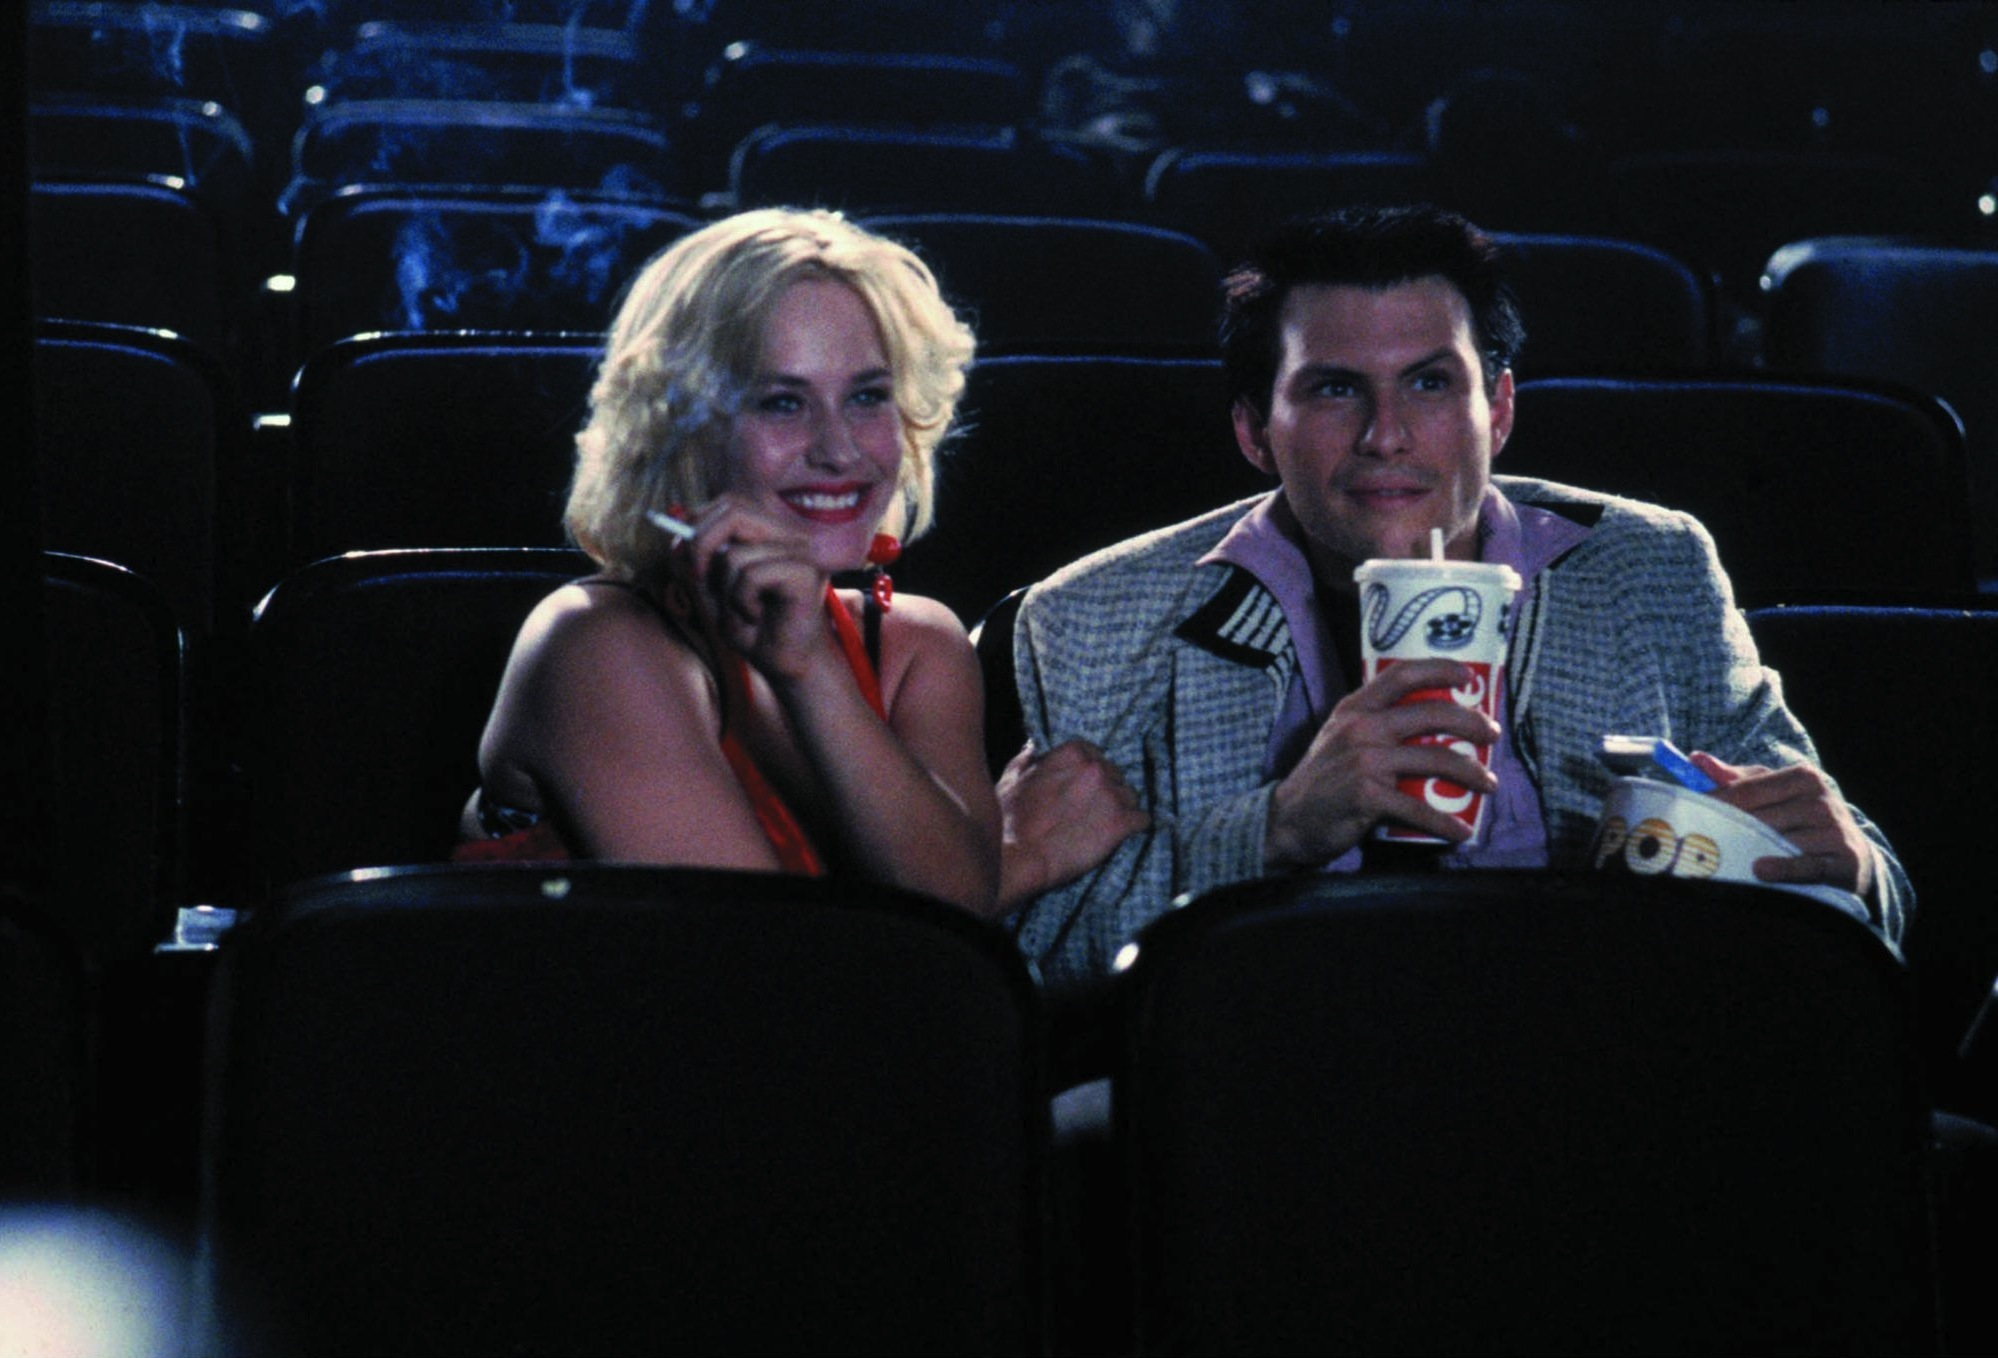 TRUE ROMANCE (1993 / 35mm Print) - Sun Feb 17th 6pm / Prince Charles Cinema, London UKA comic-book nerd and Elvis fanatic Clarence (Christian Slater) and a prostitute named Alabama (Patricia Arquette) fall in love. Clarence breaks the news to her pimp and ends up killing him. He grabs a suitcase of cocaine on his way out thinking it is Alabama's clothing. The two hit the road for California hoping to sell the cocaine, but the mob is soon after them. Pure edgy early 90s cinema. Written by Quentin Tarantino and Directed by Tony Scott.More info HERE